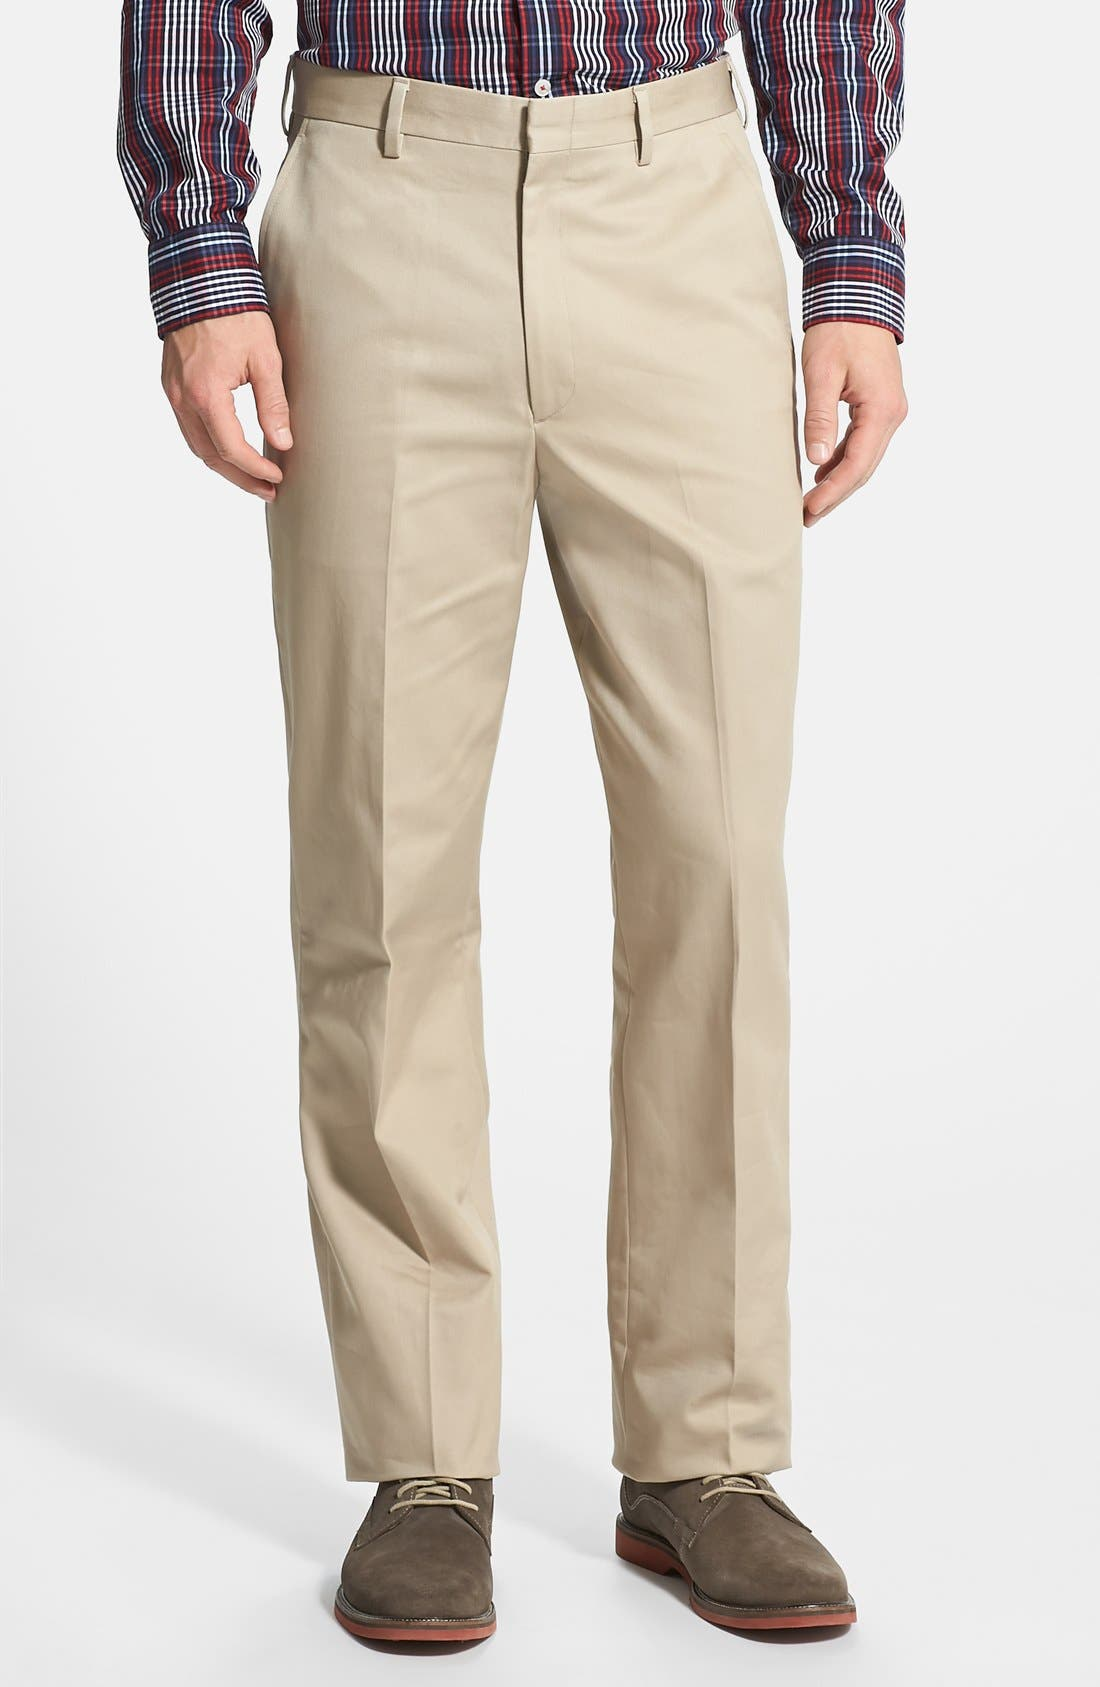 Flat Front Wrinkle Resistant Cotton Trousers,                             Main thumbnail 1, color,                             Khaki